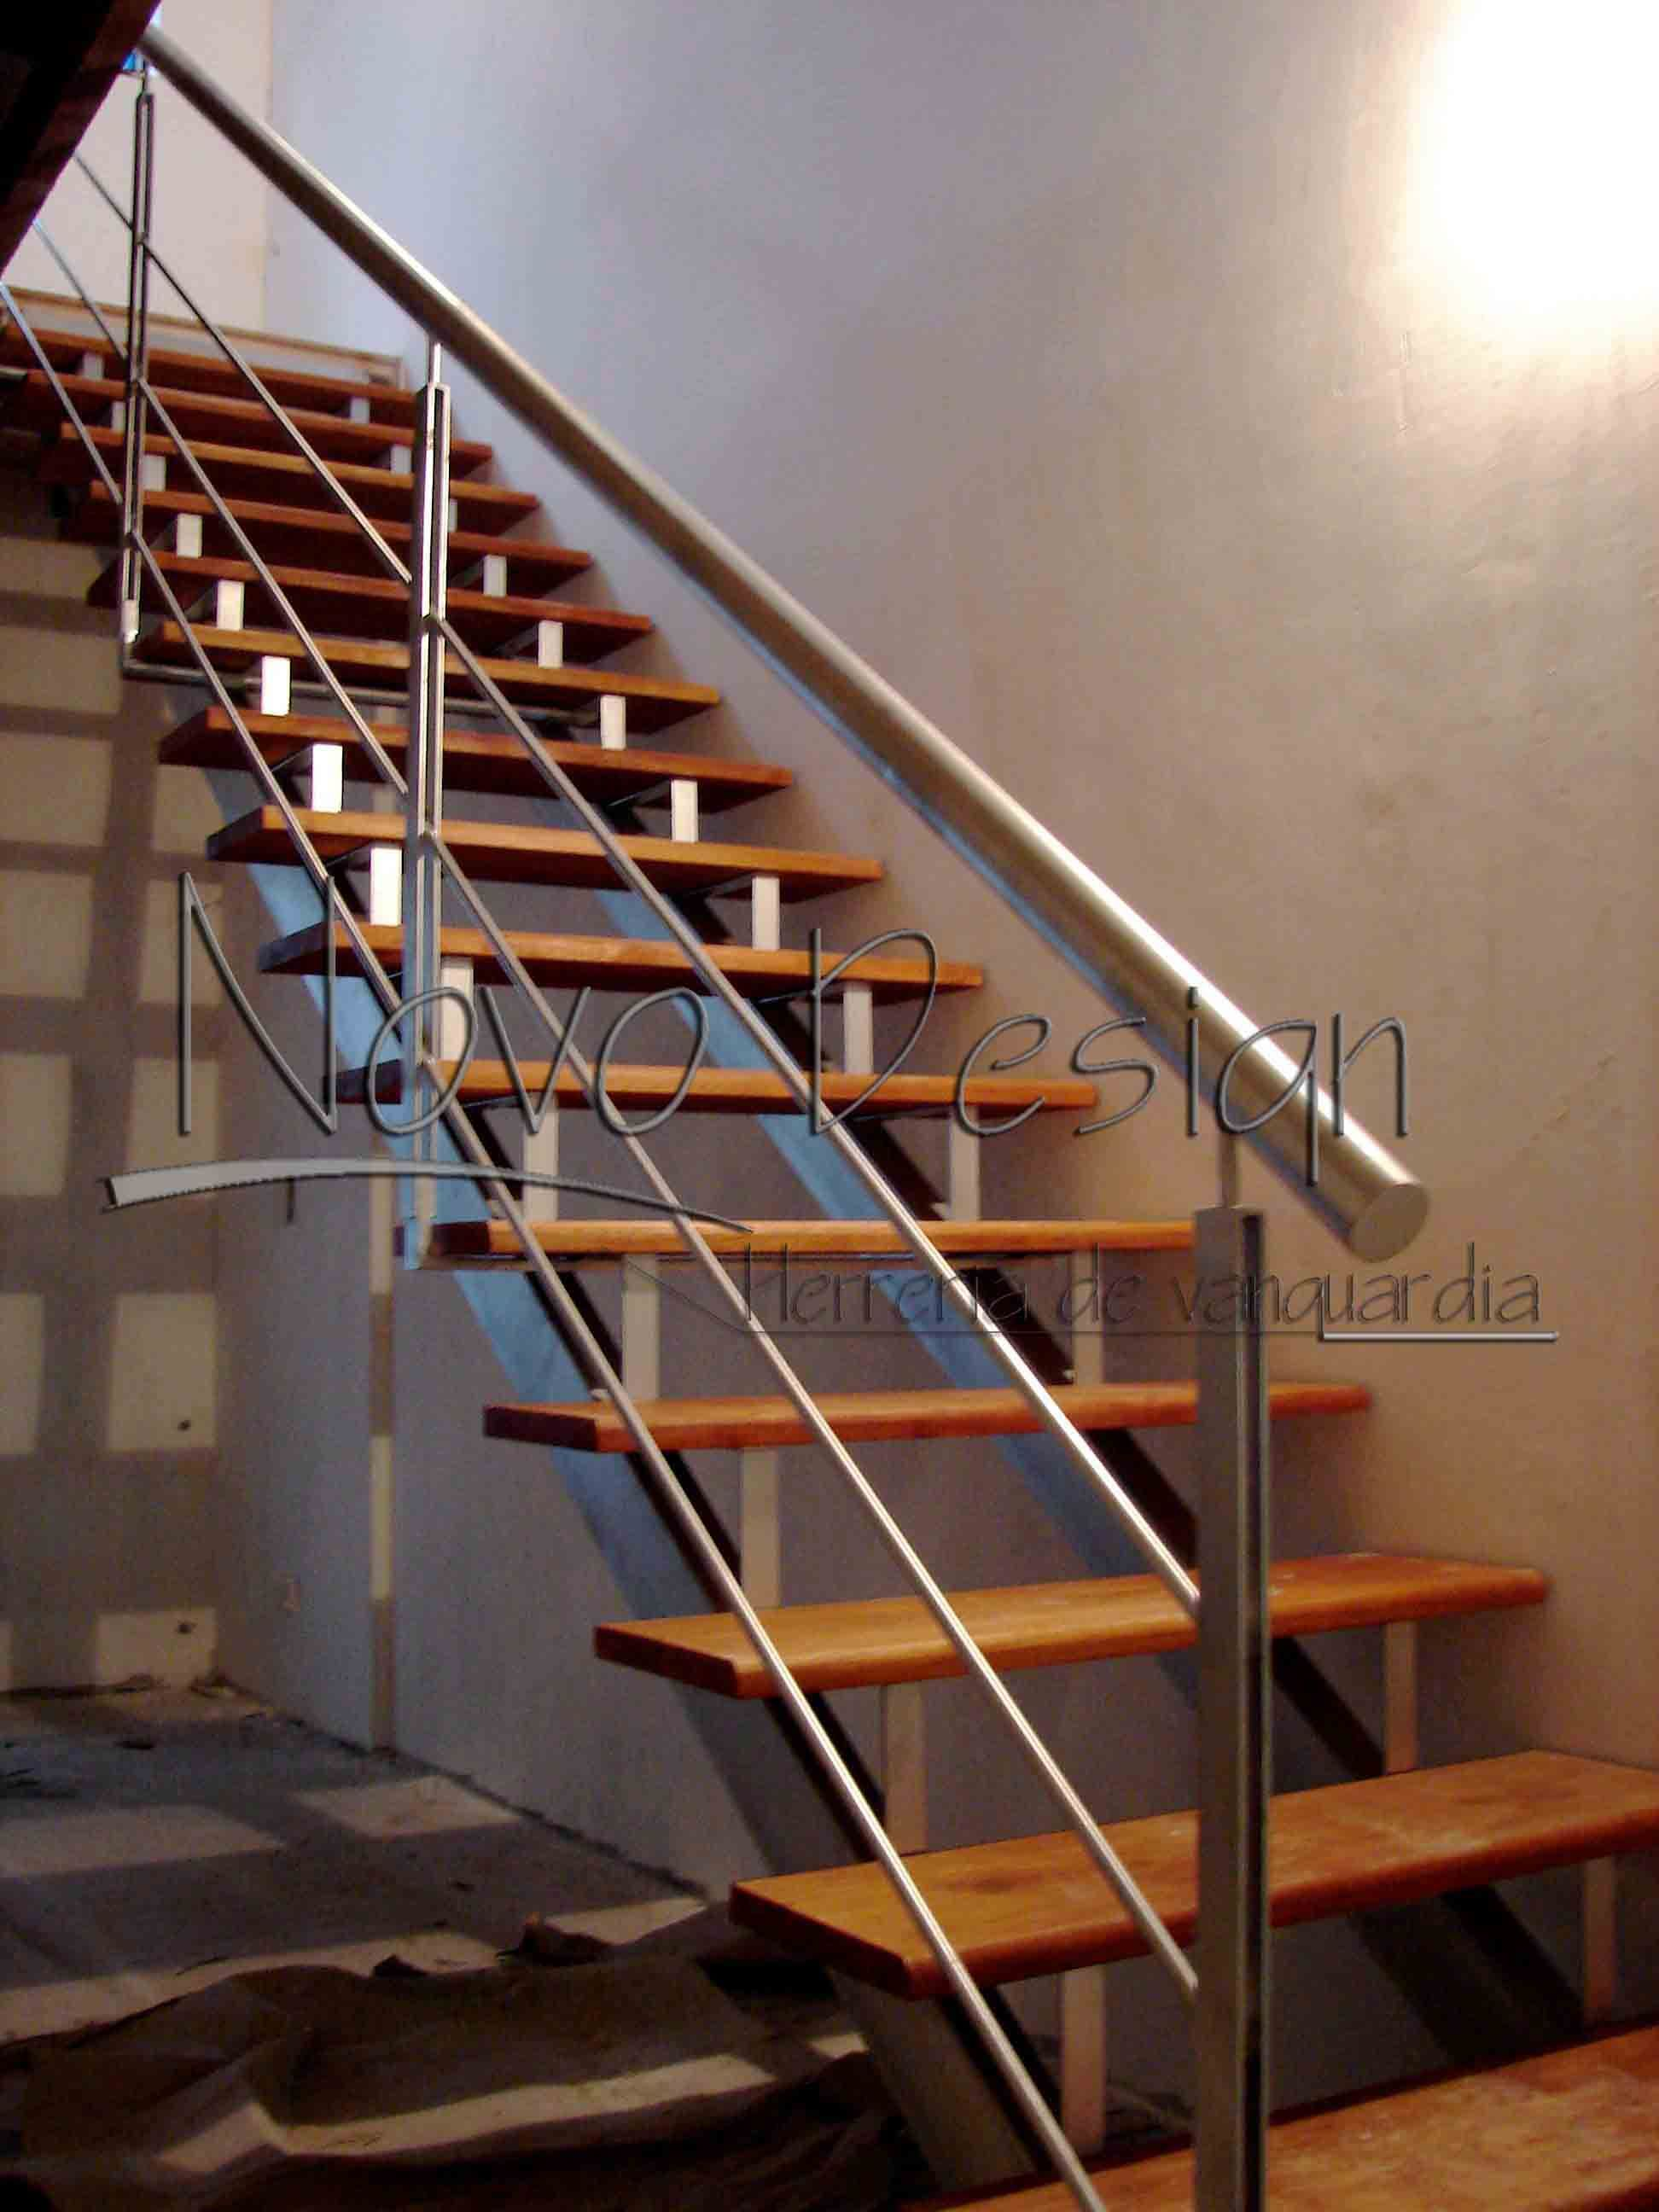 Escalera recta dos ejes venta de escaleras y barandas for Escalera metalica en l